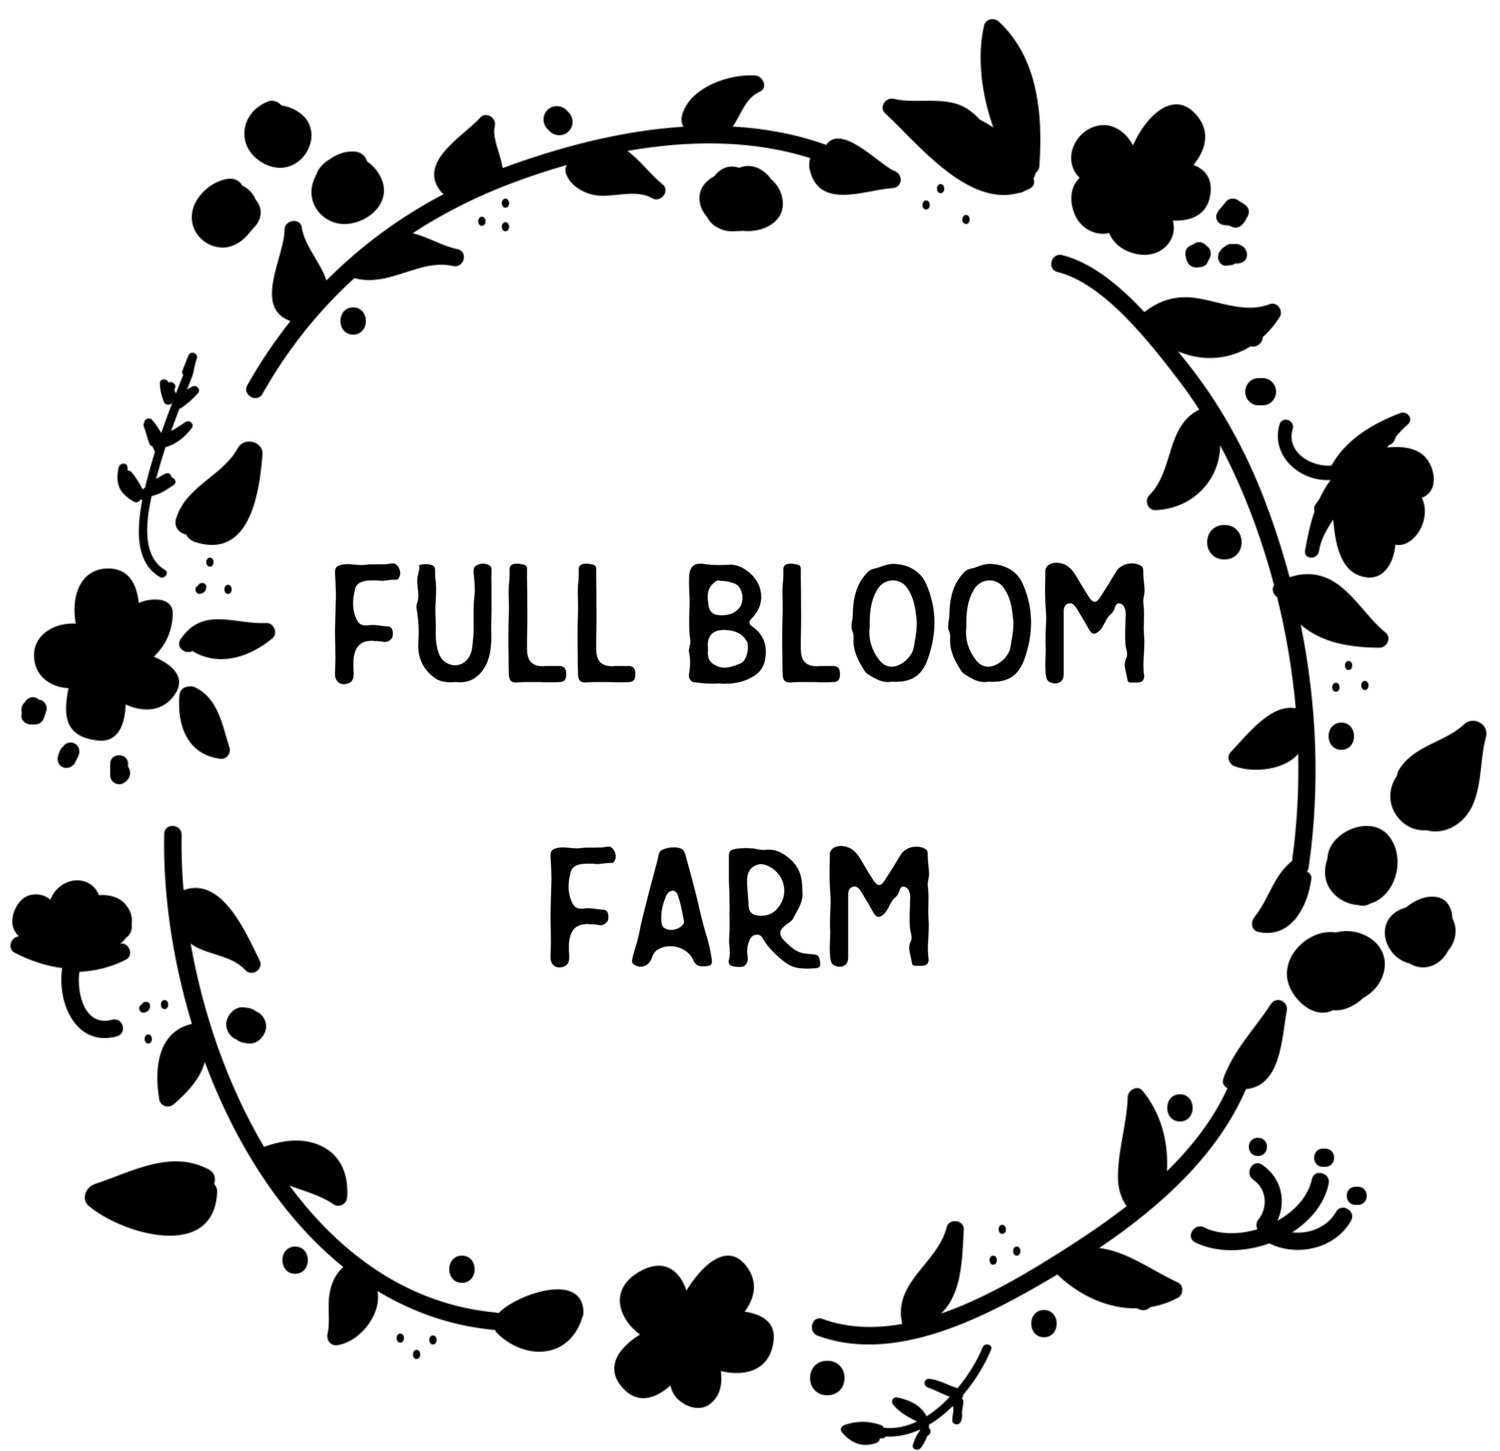 Full Bloom Farm